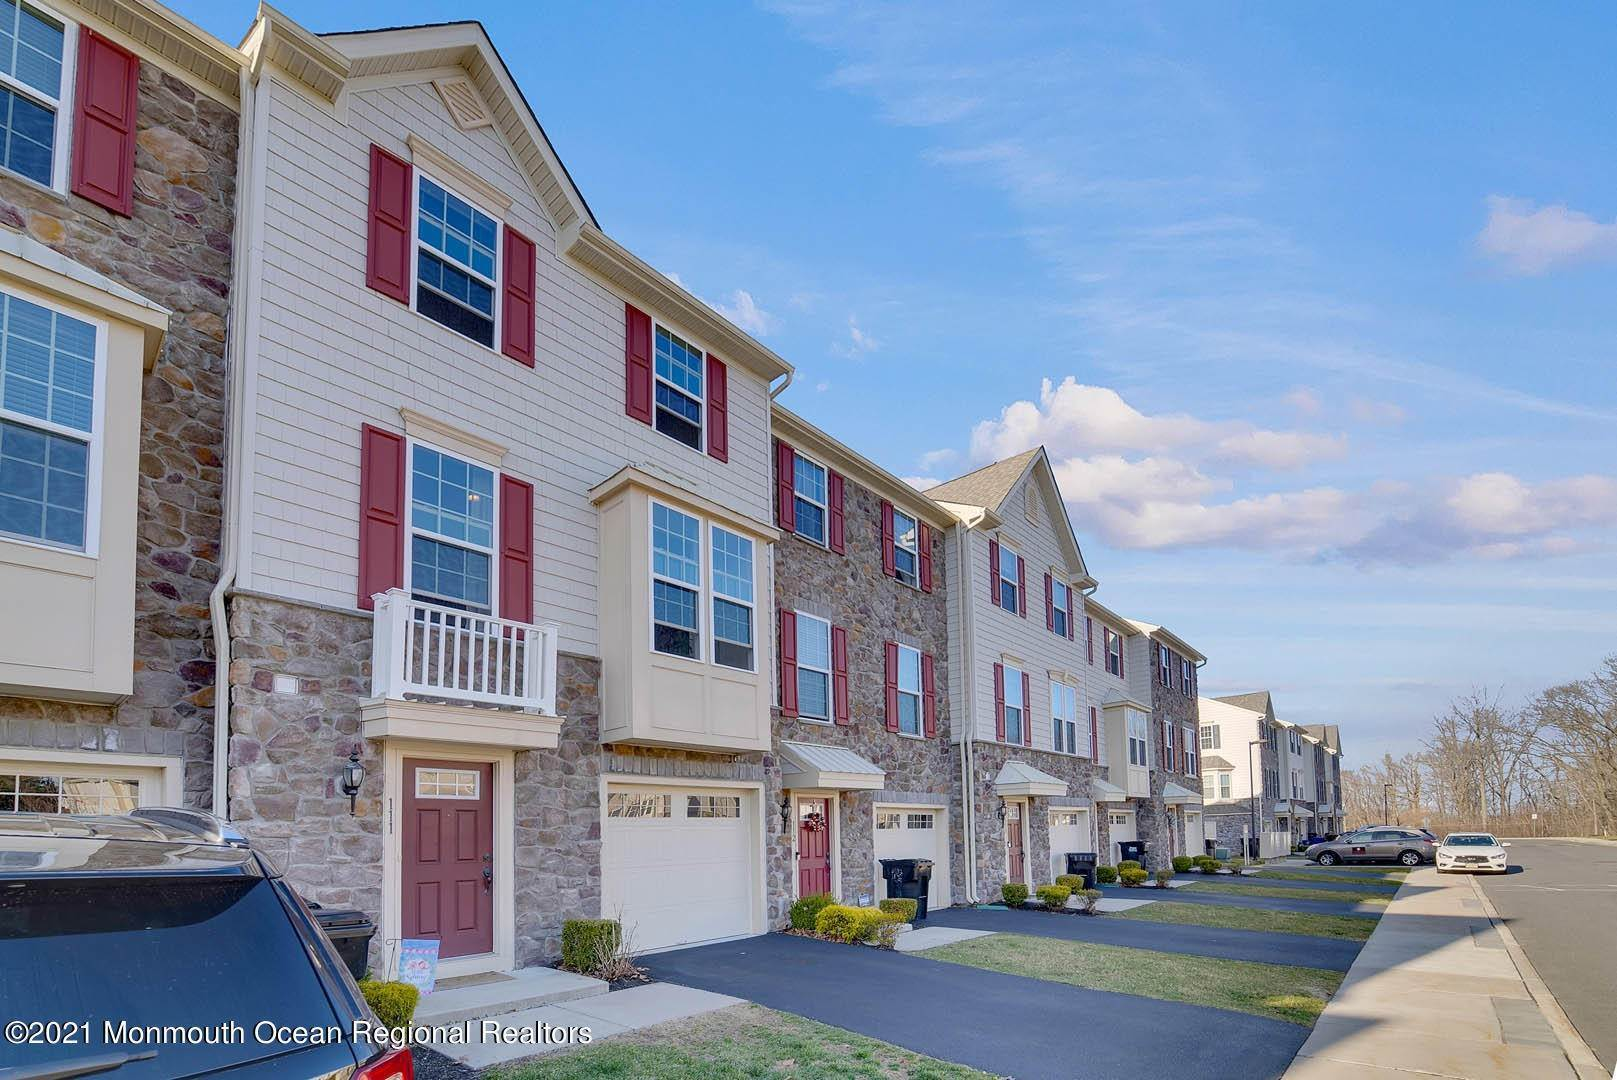 Condominiums for Sale at 111 Phillip E. Frank Way Cliffwood, New Jersey 07721 United States